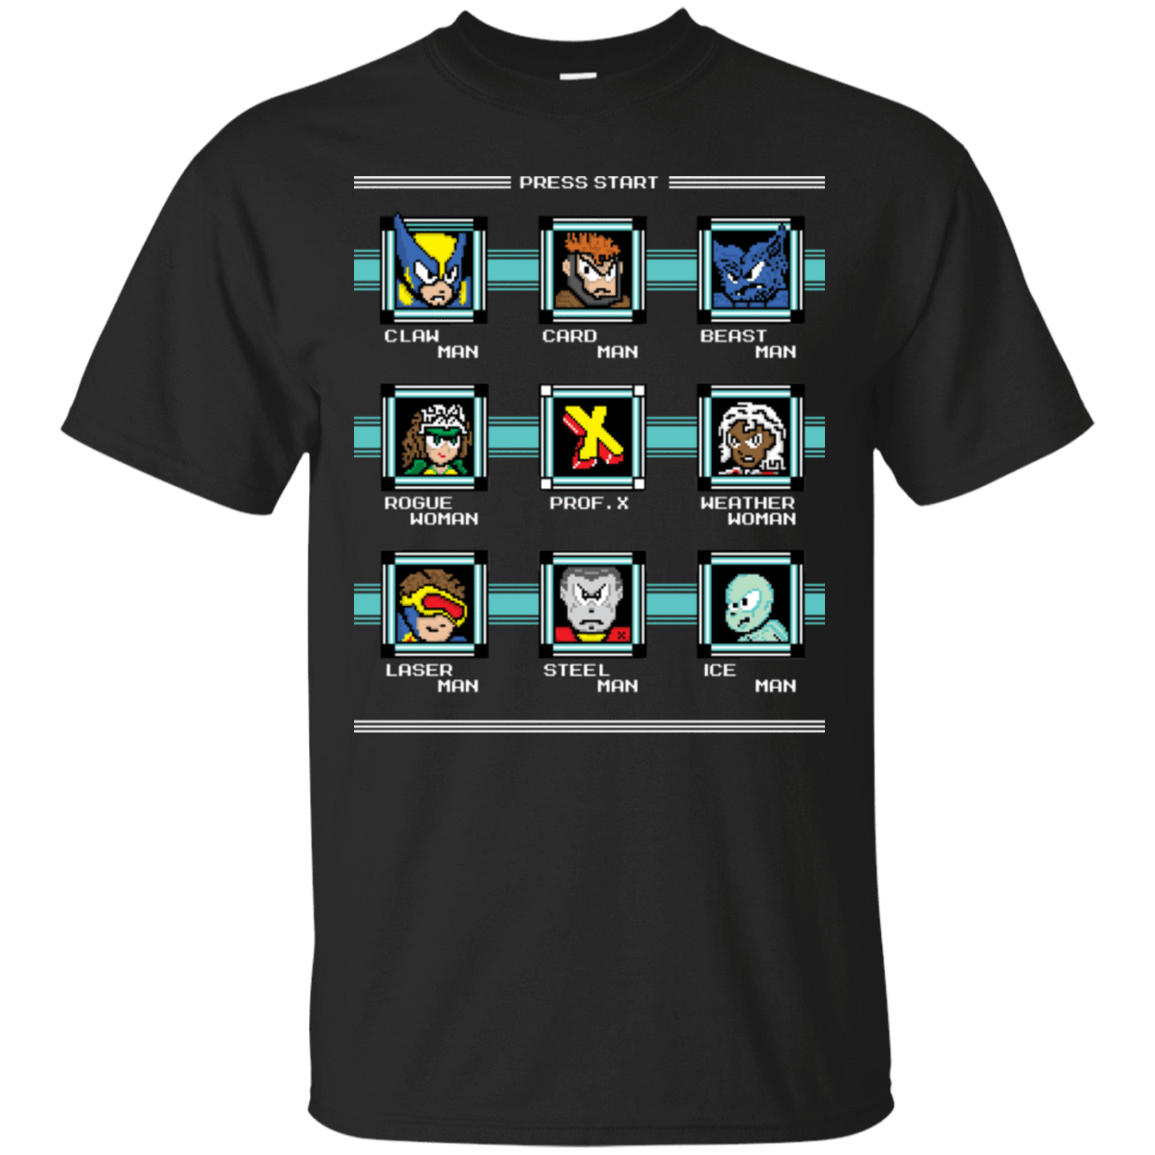 T-Shirts Black / S Mega X-Man T-Shirt